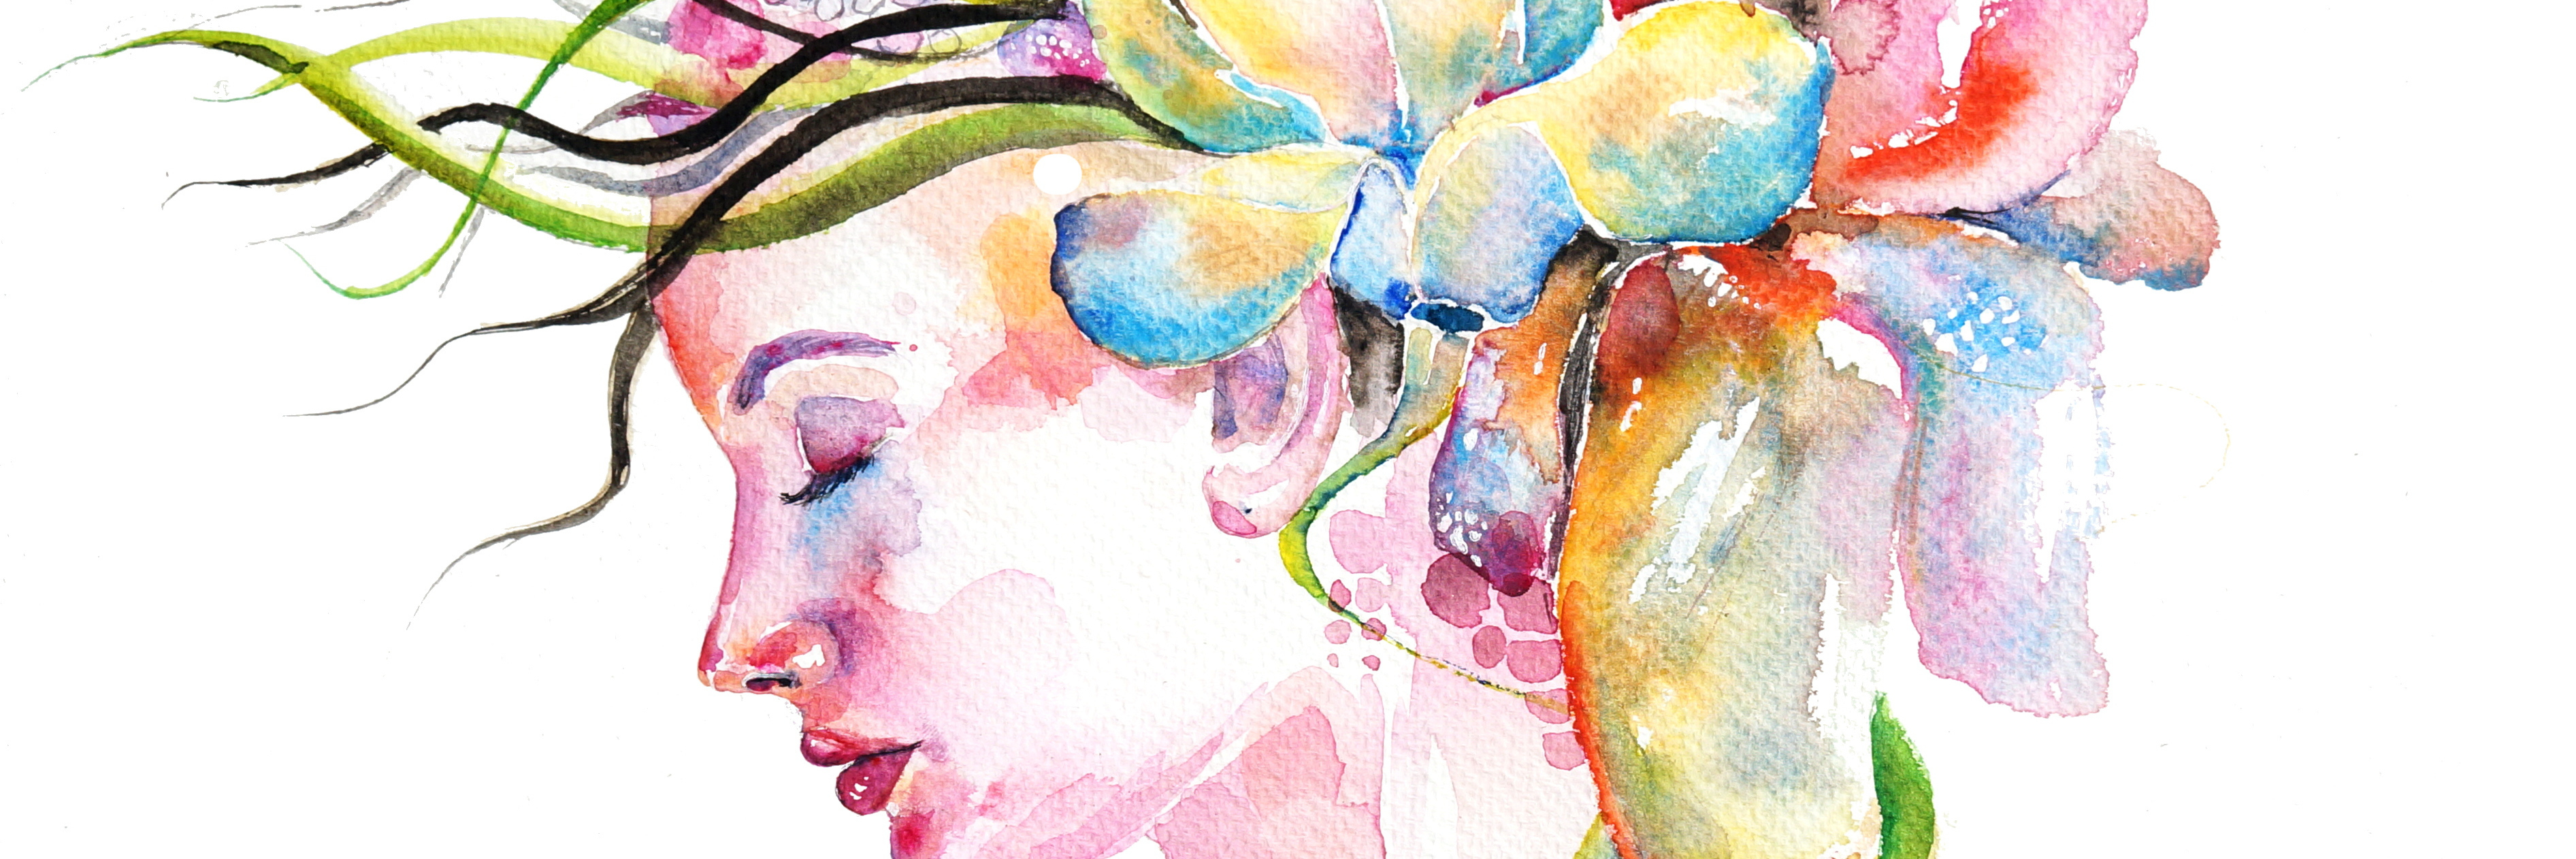 Watercolor illustration representing young girl face with lowers in her hair. Flowers are in light blue and pink colors.